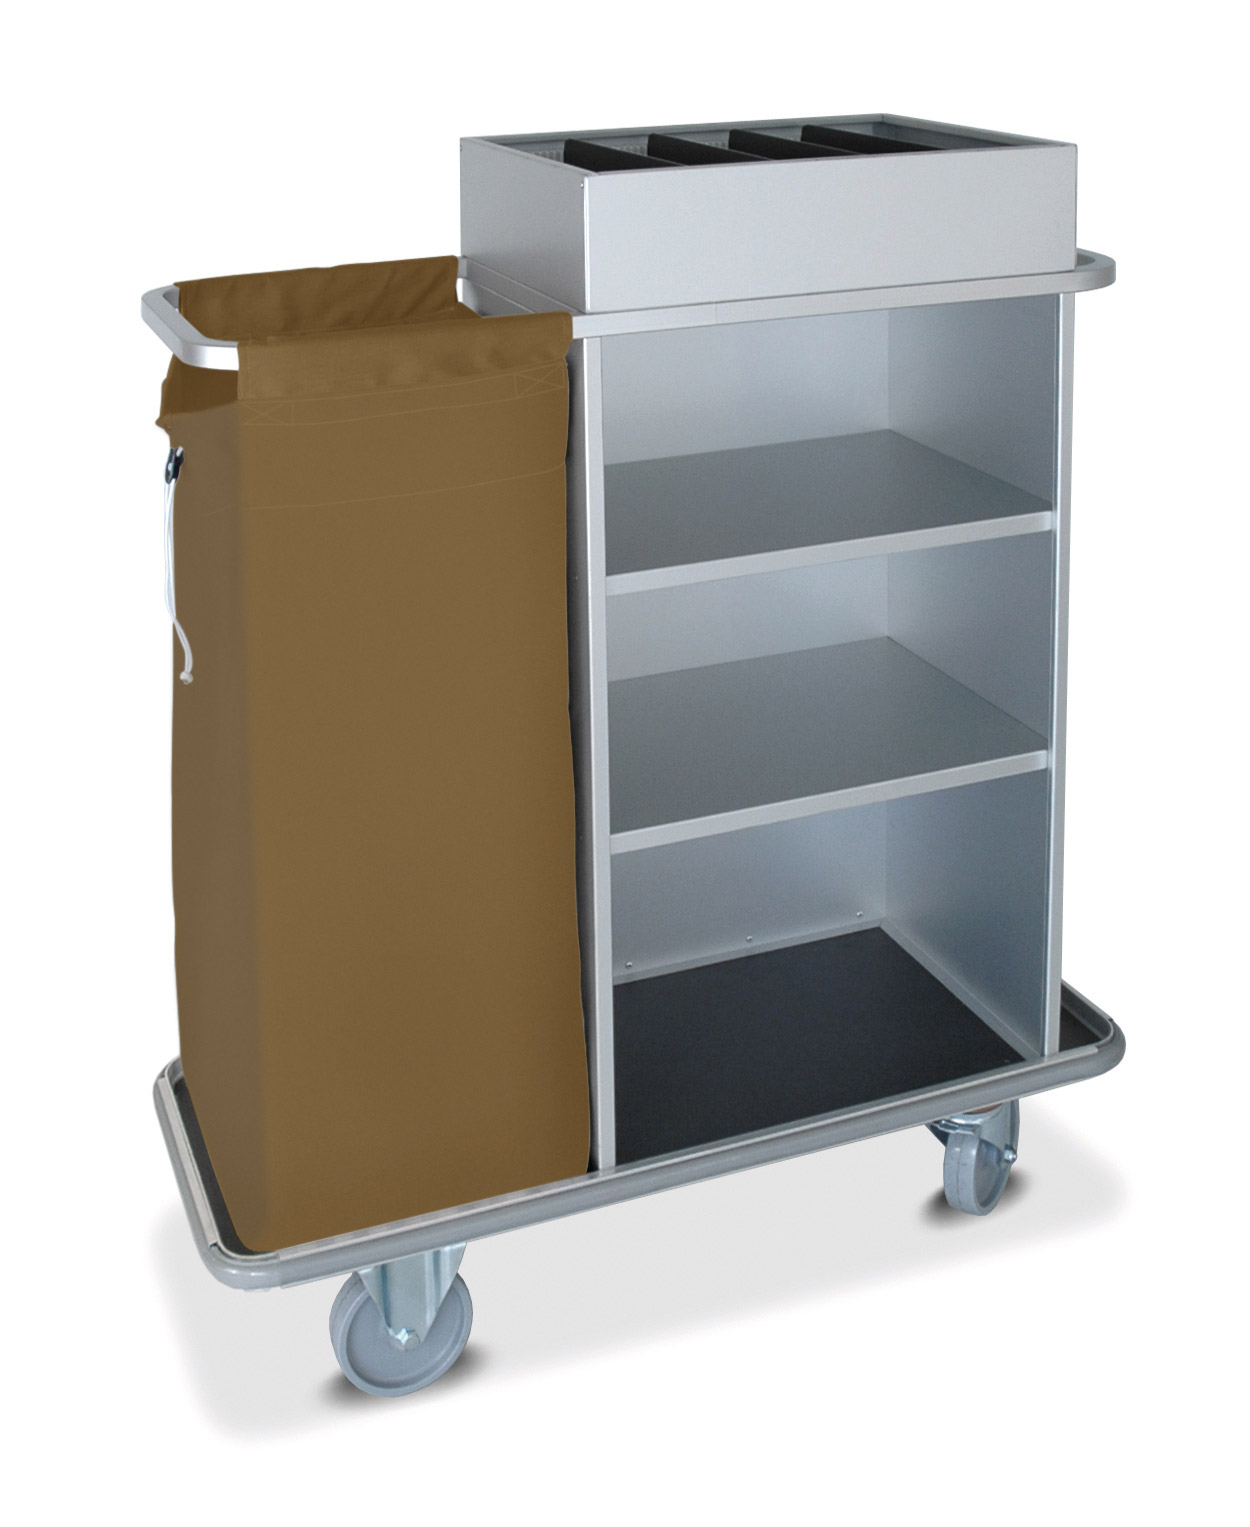 Housekeeping trolleys for hotels and cruise ships - Mercura